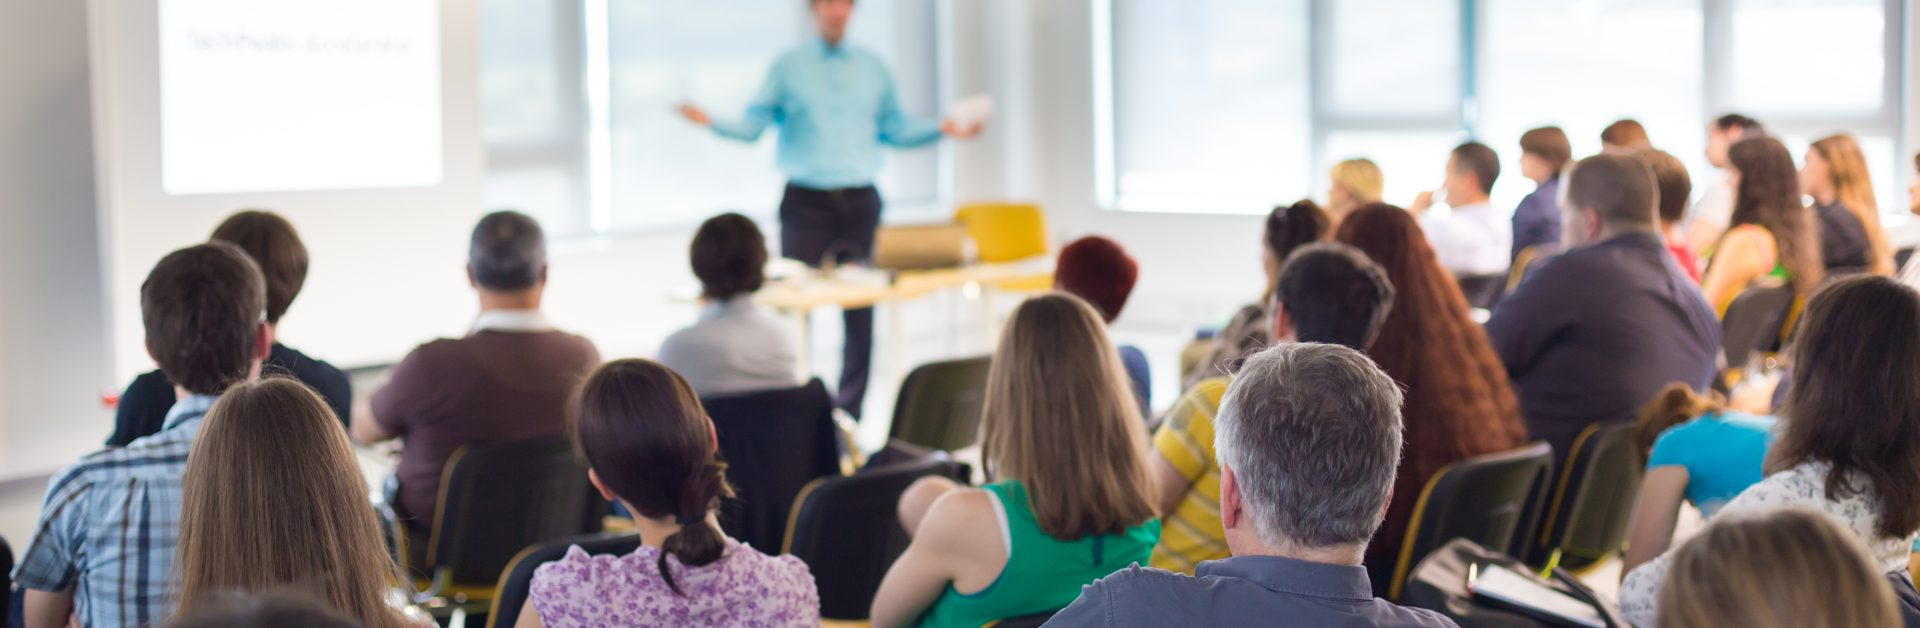 Speaker,At,Business,Convention,And,Presentation.,Audience,At,The,Conference